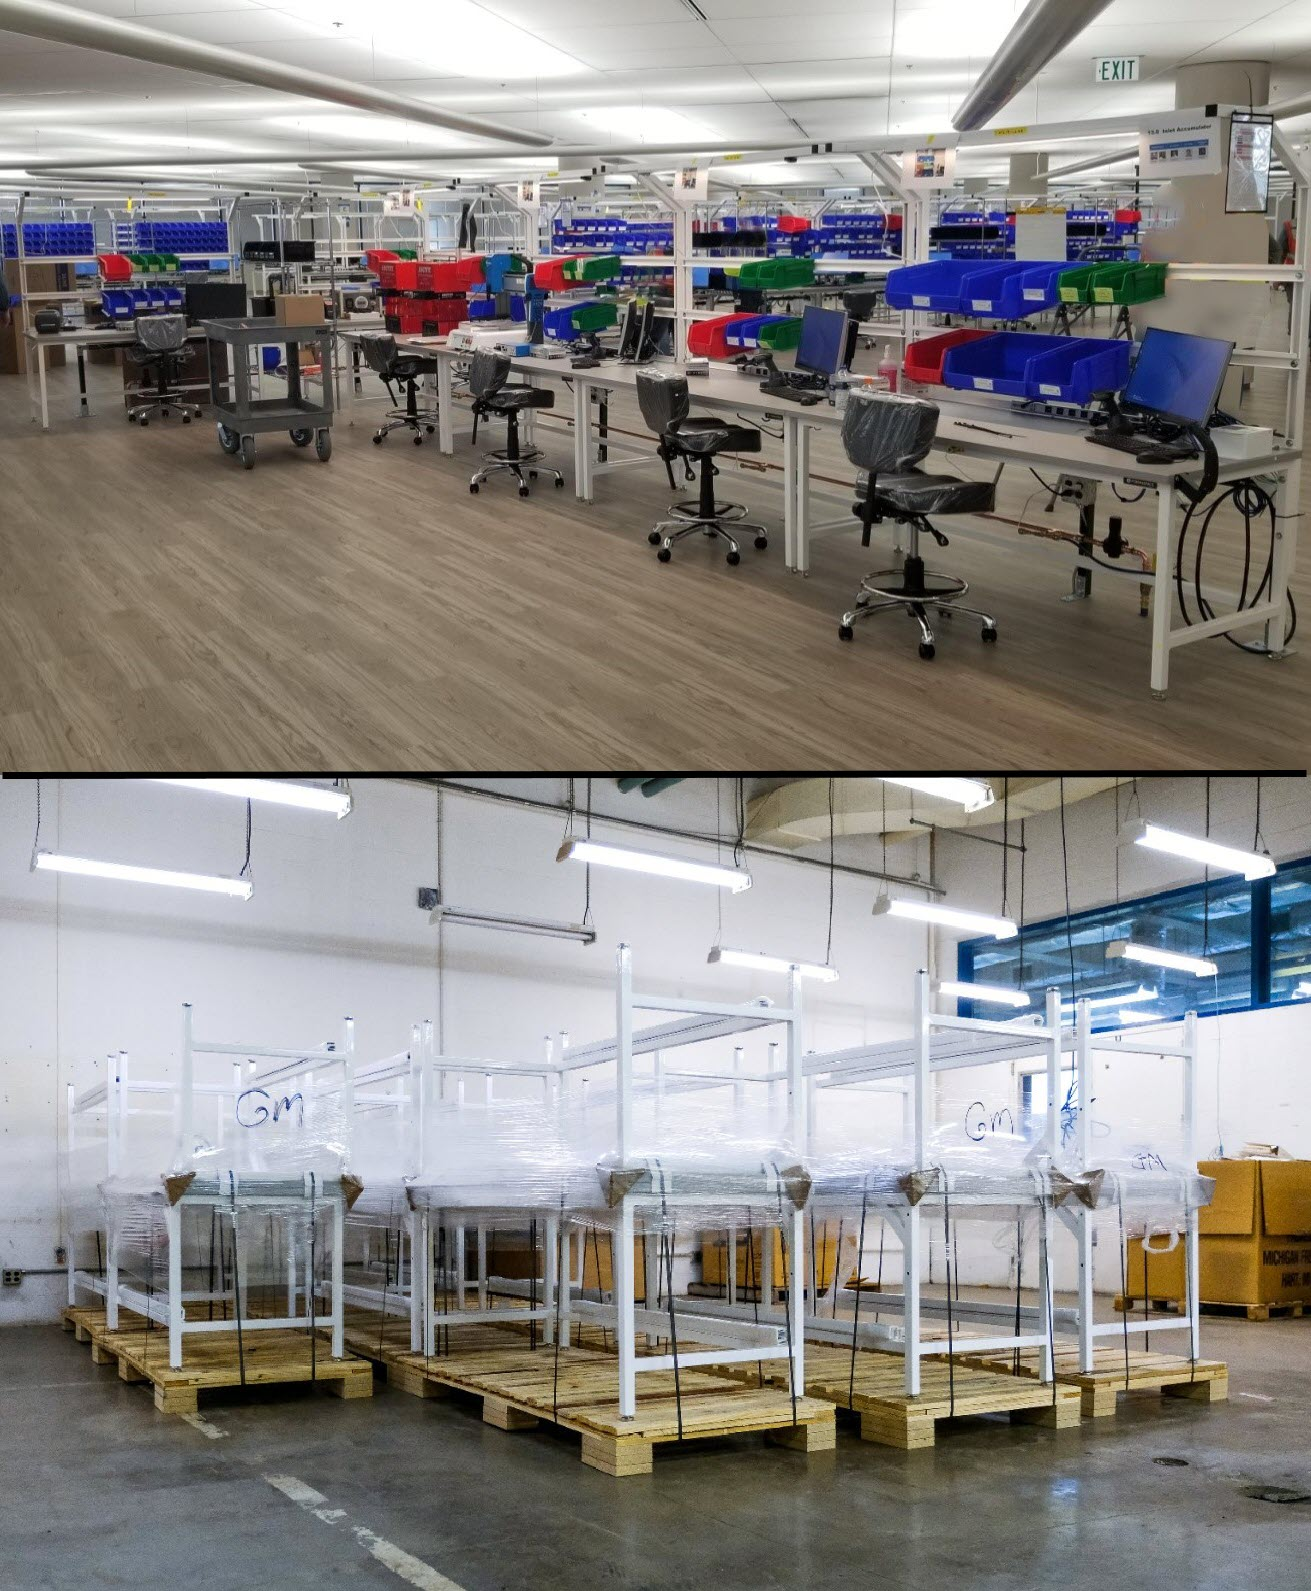 Formaspace manufactured 500 ESD workbenches for GM's ventilator factory in Kokomo, Indiana